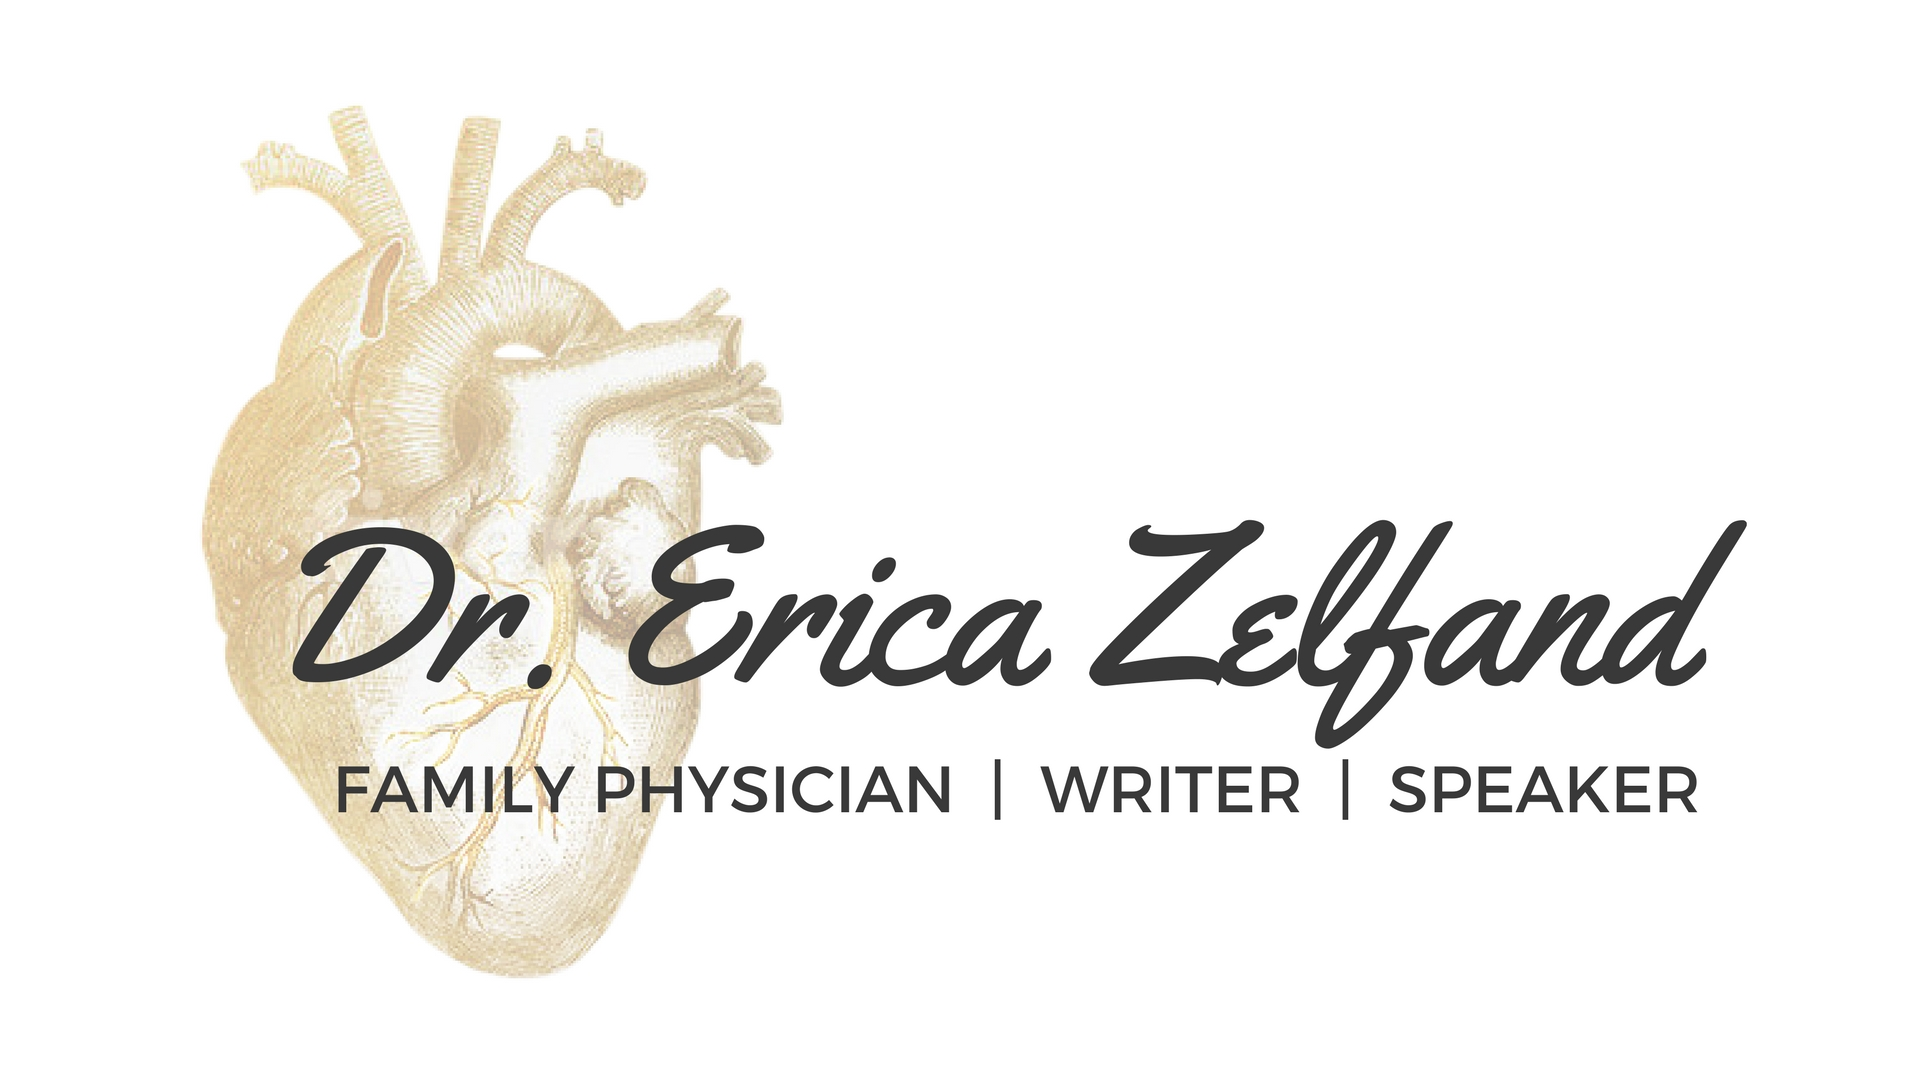 Dr. Erica Zelfand | Medical Writer, Speaker, Functional Medicine Physician | Online Consultations